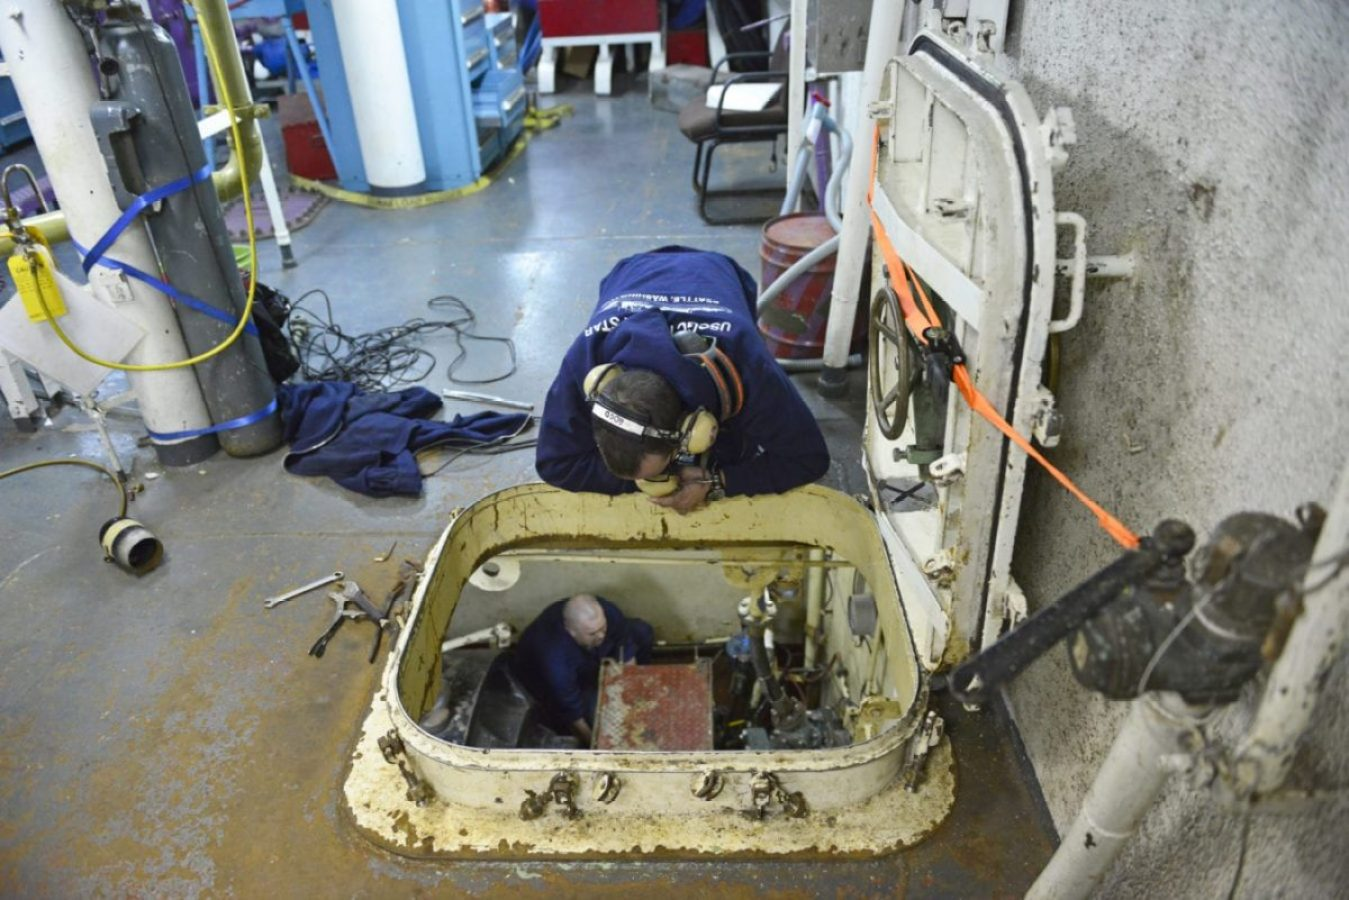 Engineers abroad the Coast Guard Cutter Polar Star replace a shaft seal while in the Ross Sea near Antarctica on Jan 16, 2018. The crew of the Seattle based Polar Star was on deployment to Antarctica in support of Operation Deep Freeze 2018, the U.S. military's contribution to the National Science Foundation managed U.S. Antarctic Program.